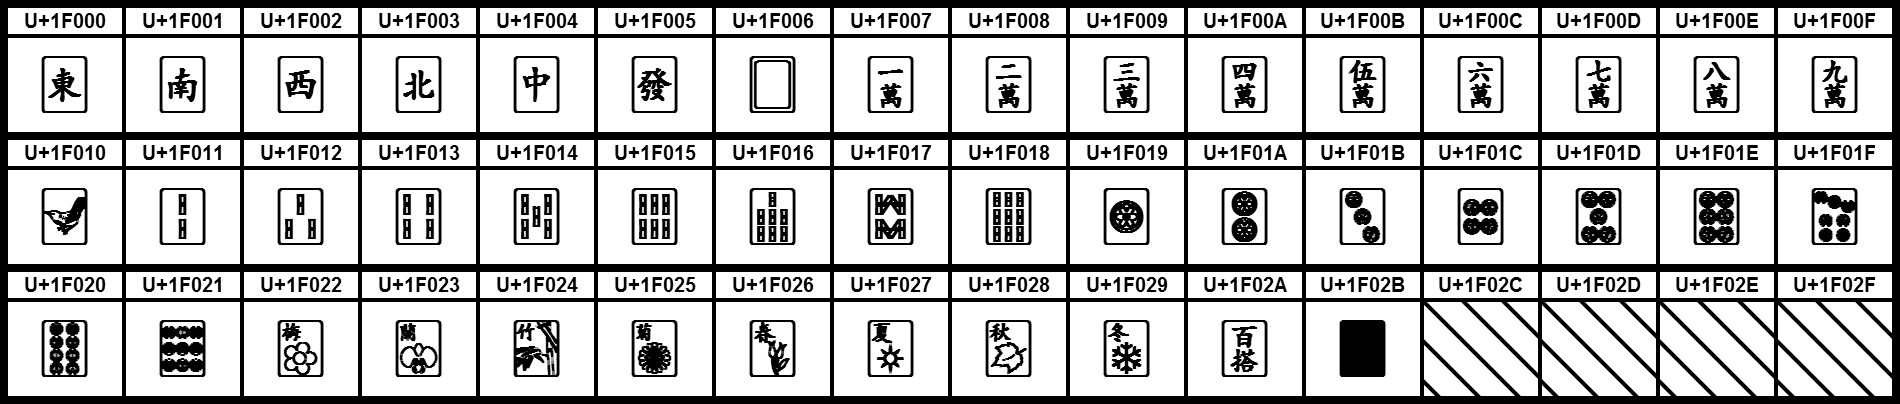 https://upload.wikimedia.org/wikipedia/commons/6/62/UCB_Mahjong_Tiles.png